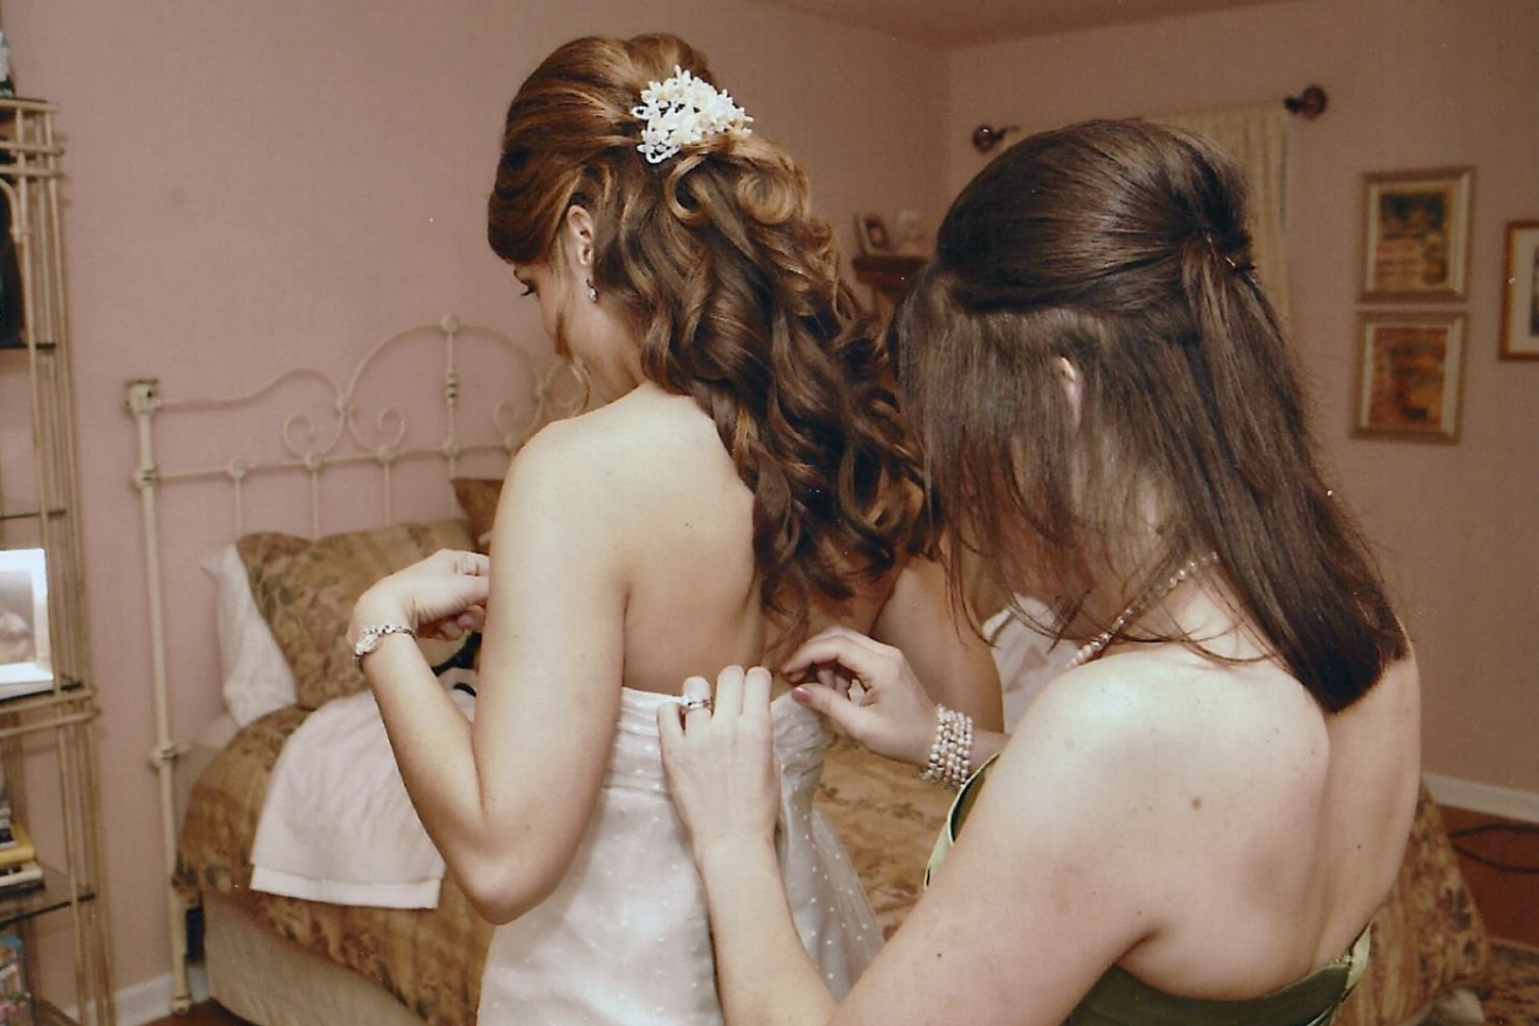 Maid of honor, Amy, helps her sister Dana get wedding ready. This photo was taken nine years ago, but Dana's hair and accessory style are still current.